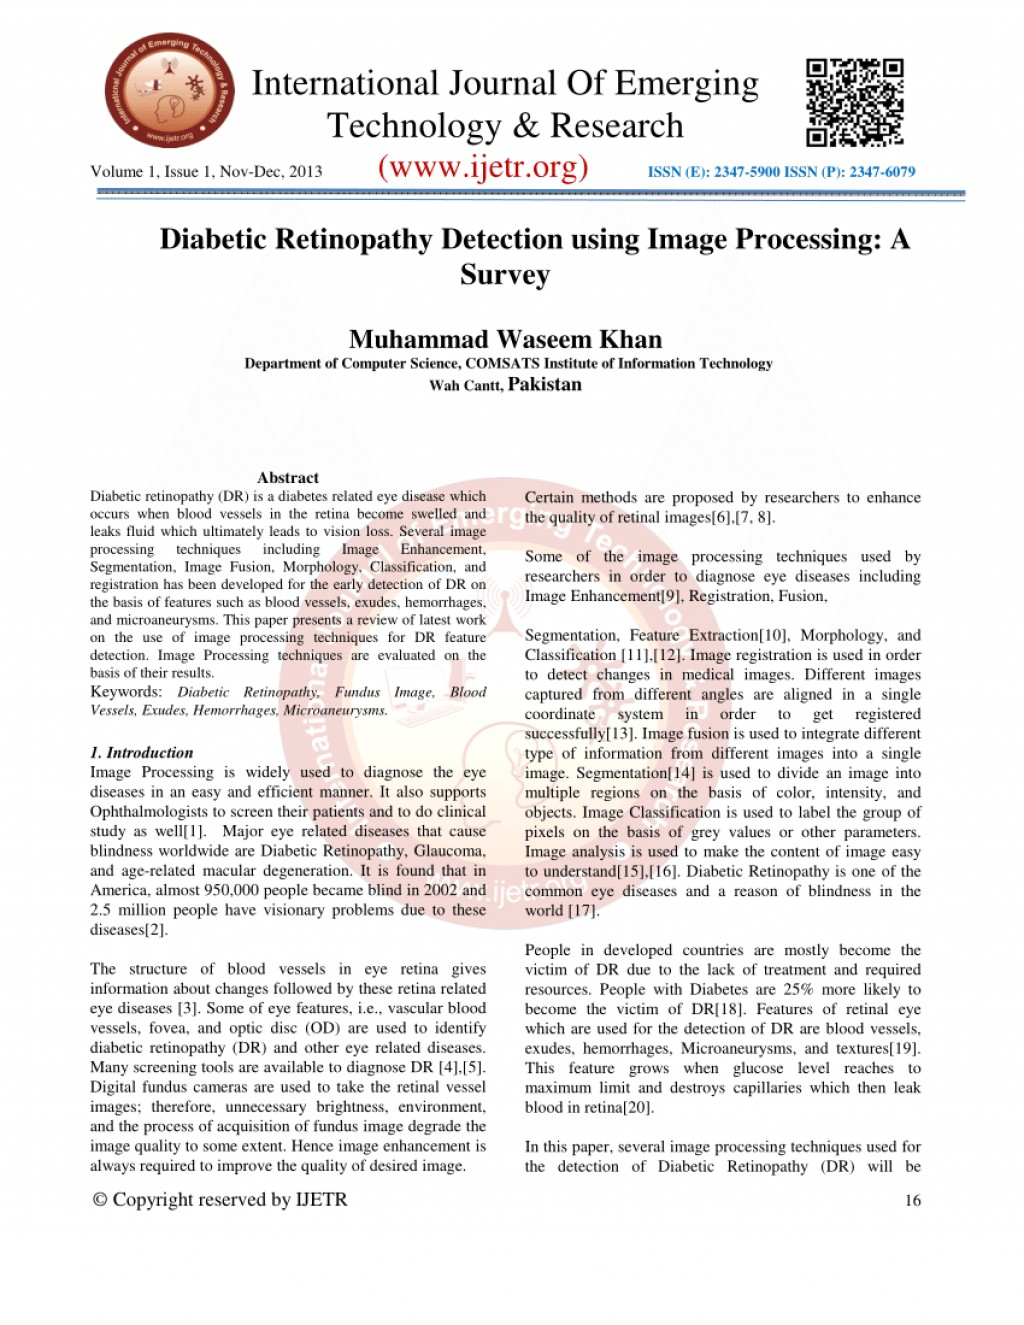 001 Diabetic Retinopathy Detection Research Paper Unusual Large